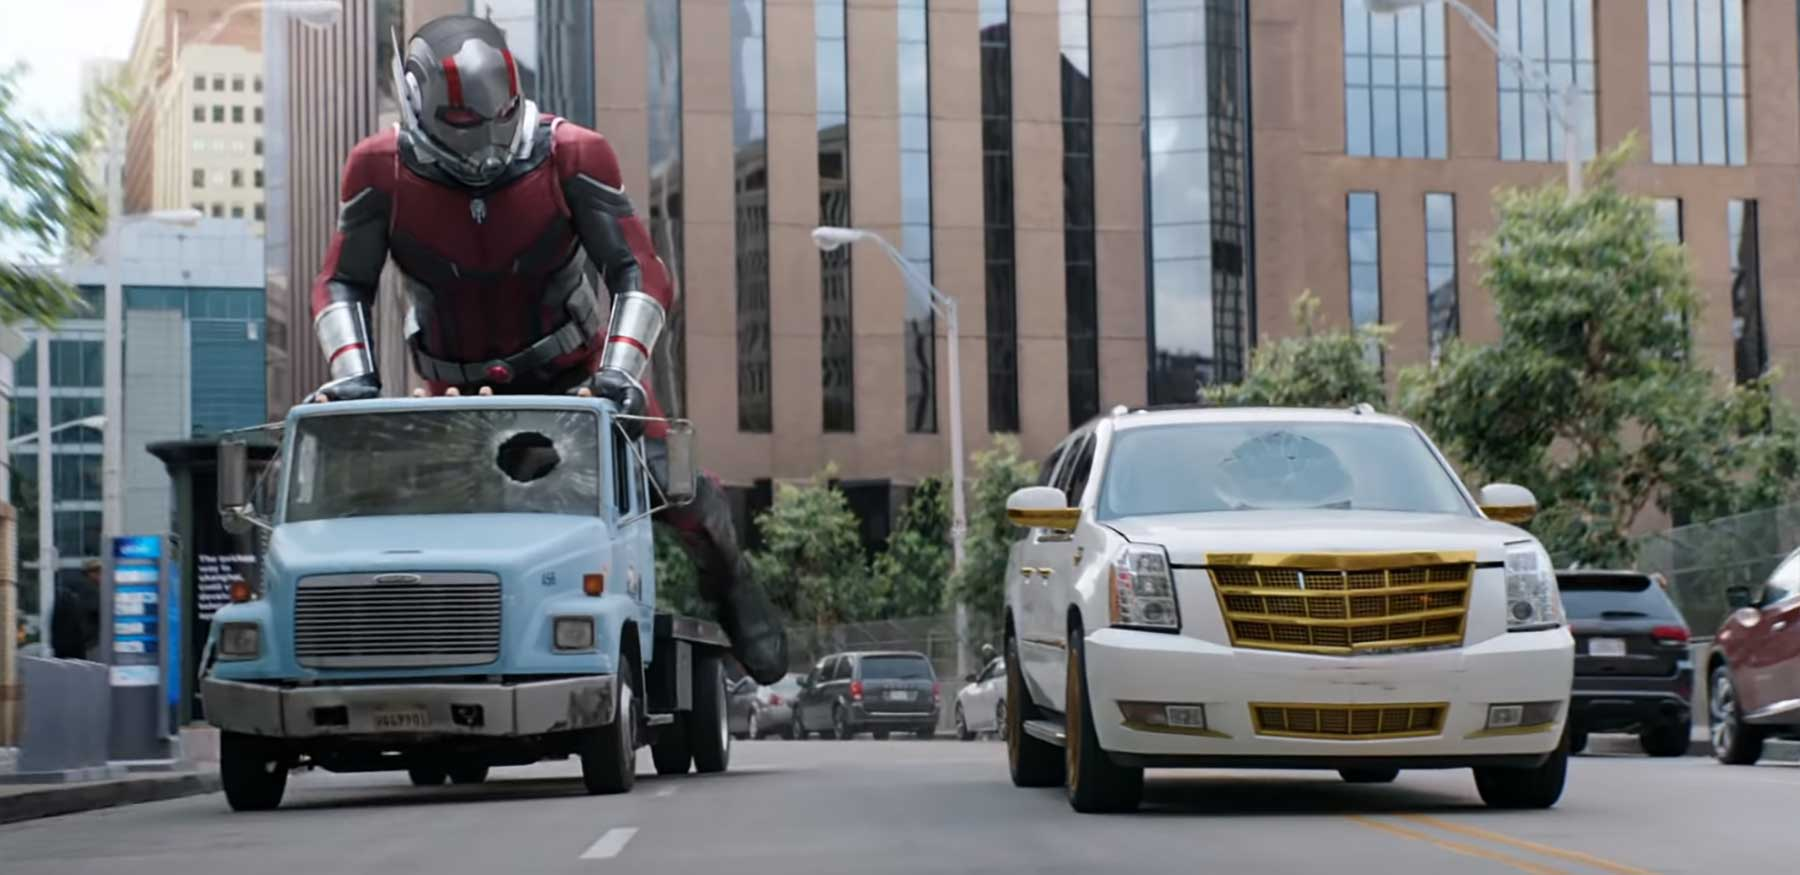 Ant-Man and the Wasp: Trailer